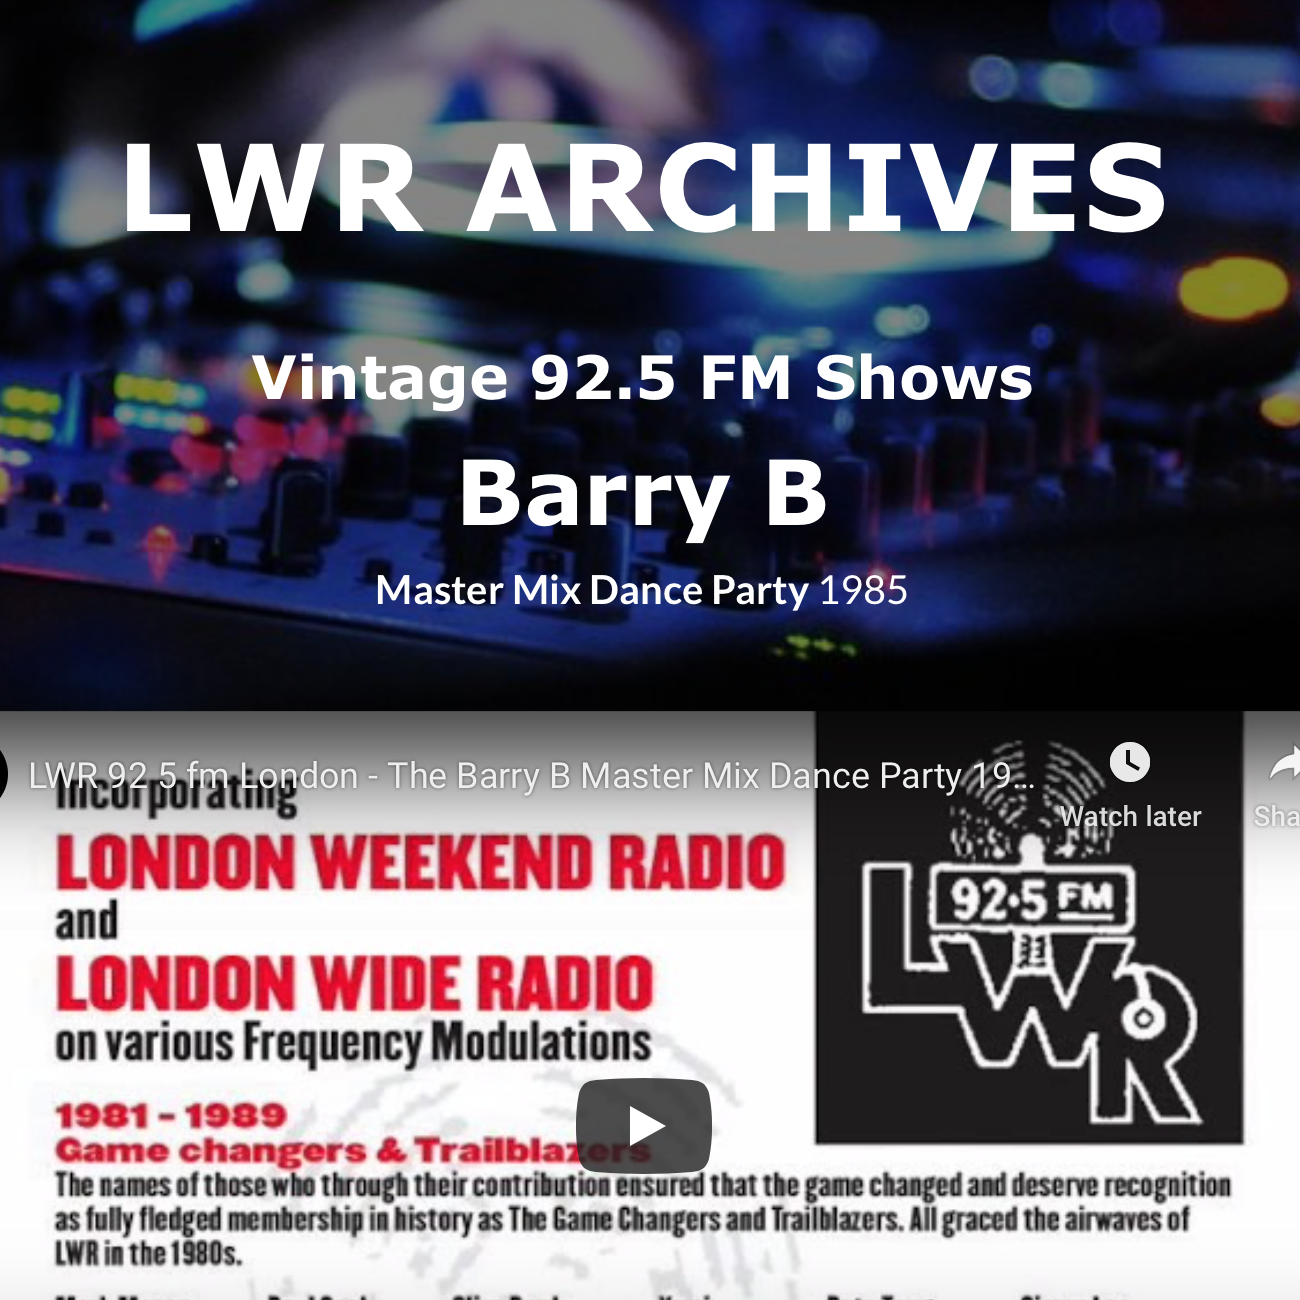 LWR-Vintage-Shows - Barry B Master Mix Dance Party 1985